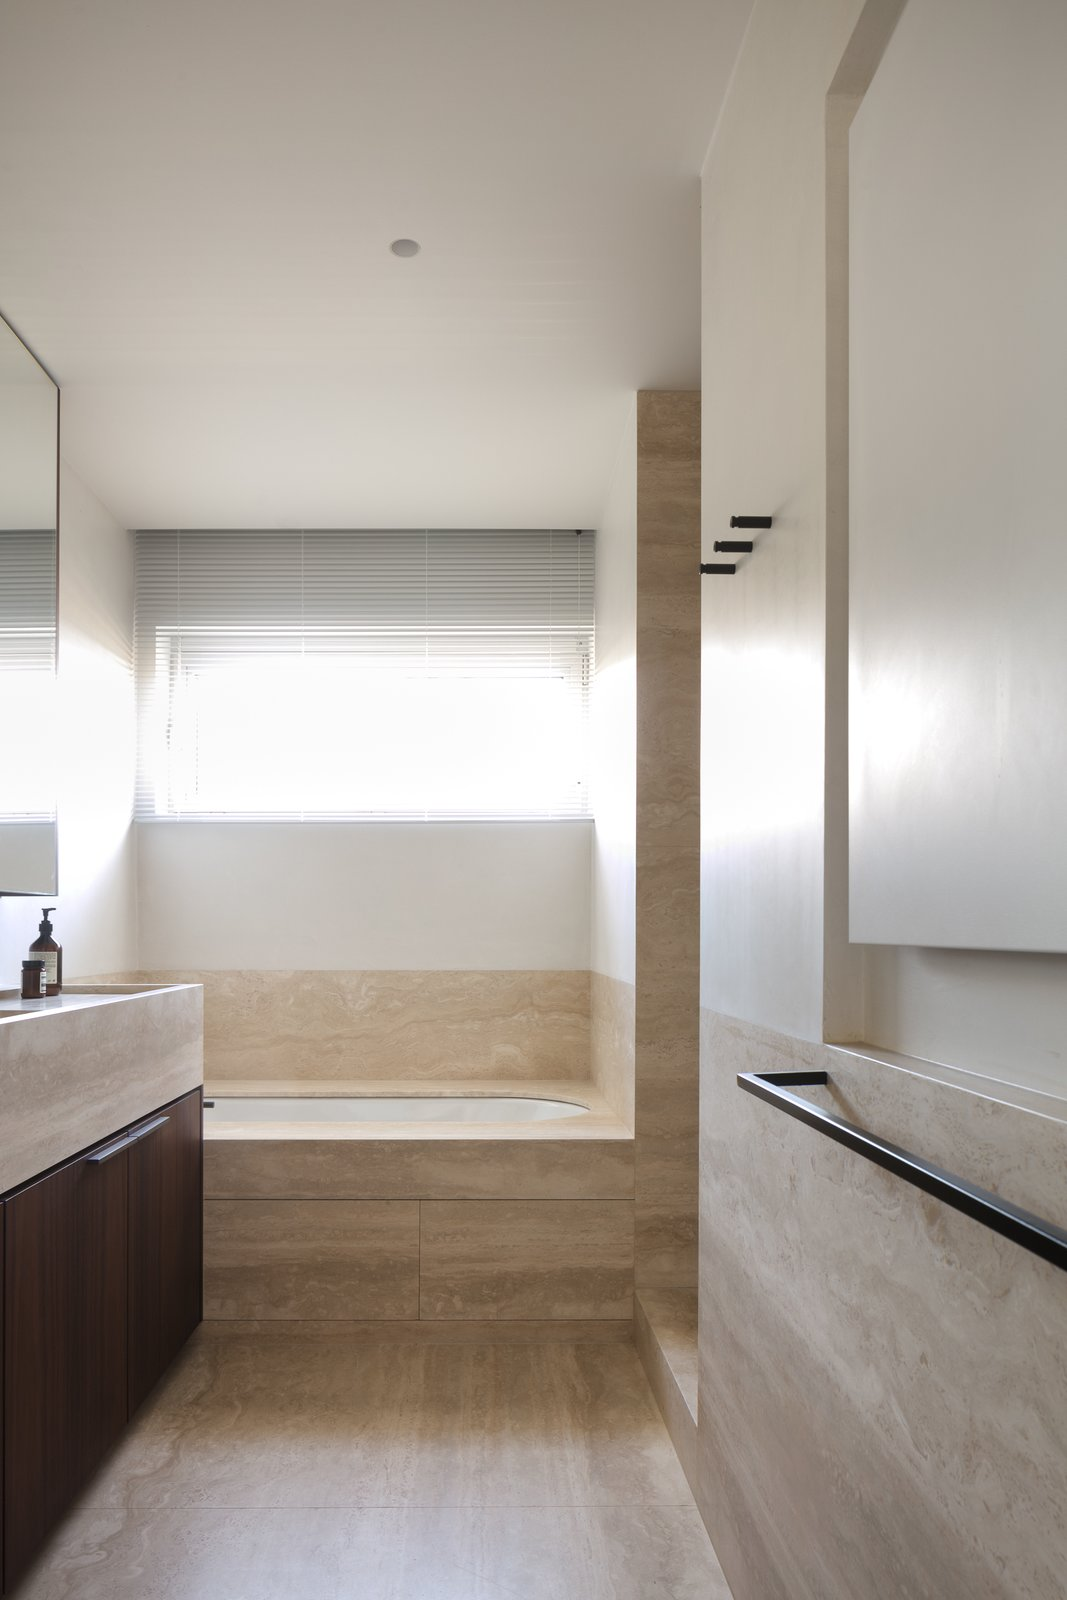 Bath Room, Soaking Tub, and Undermount Tub  Photo 16 of 21 in BC House by Dieter Vander Velpen